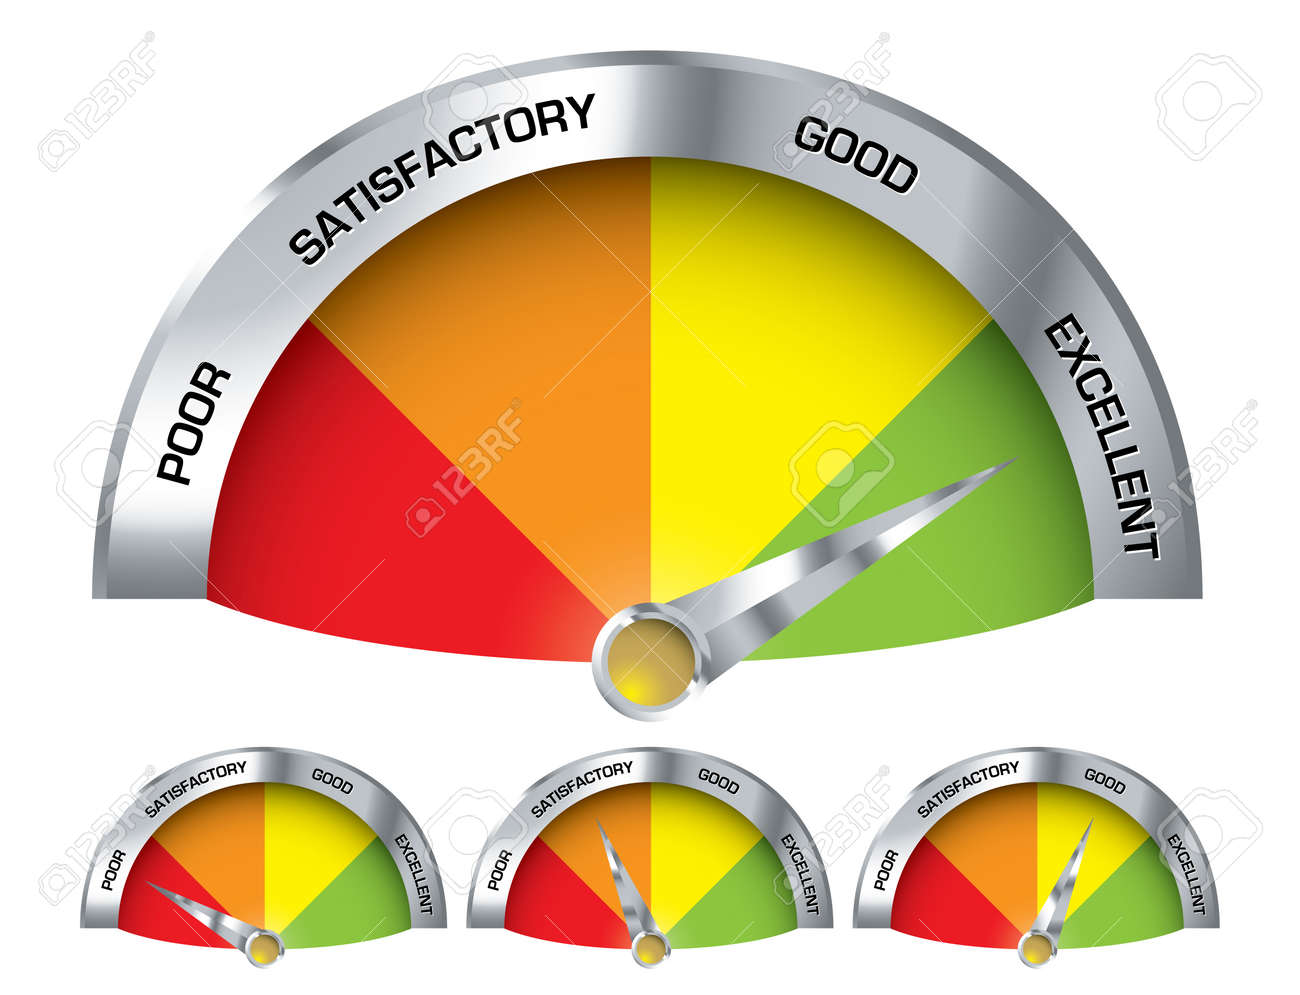 icon style element with performance indicators from poor to excellent - 47403570